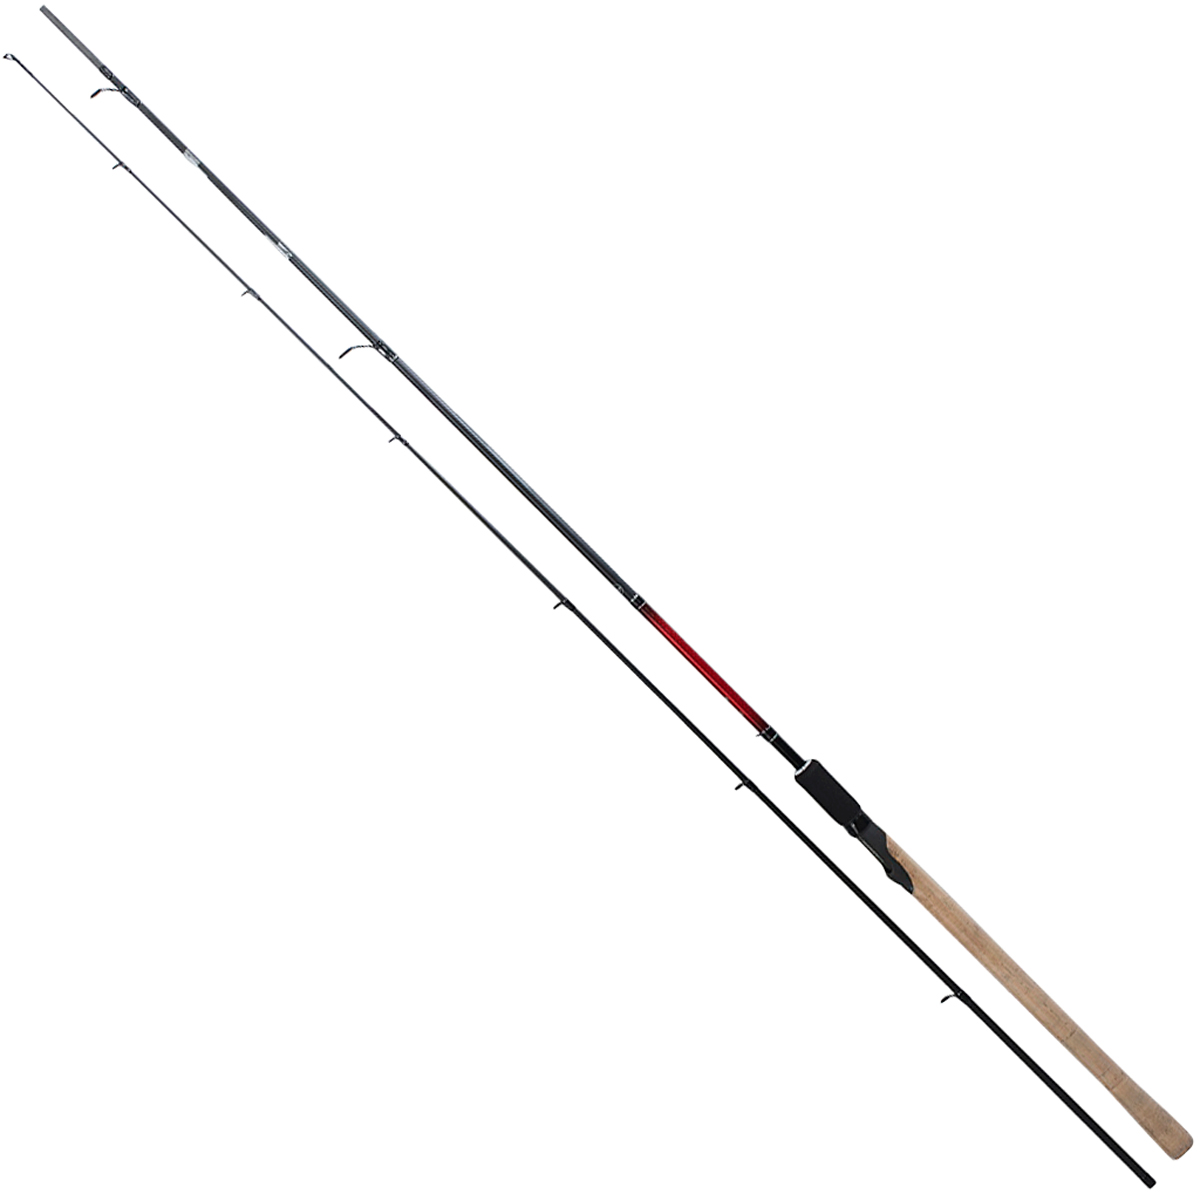 Спиннинг Shimano Yasei Red AX Zander Player 2.7m 10-30g (арт.22667719)